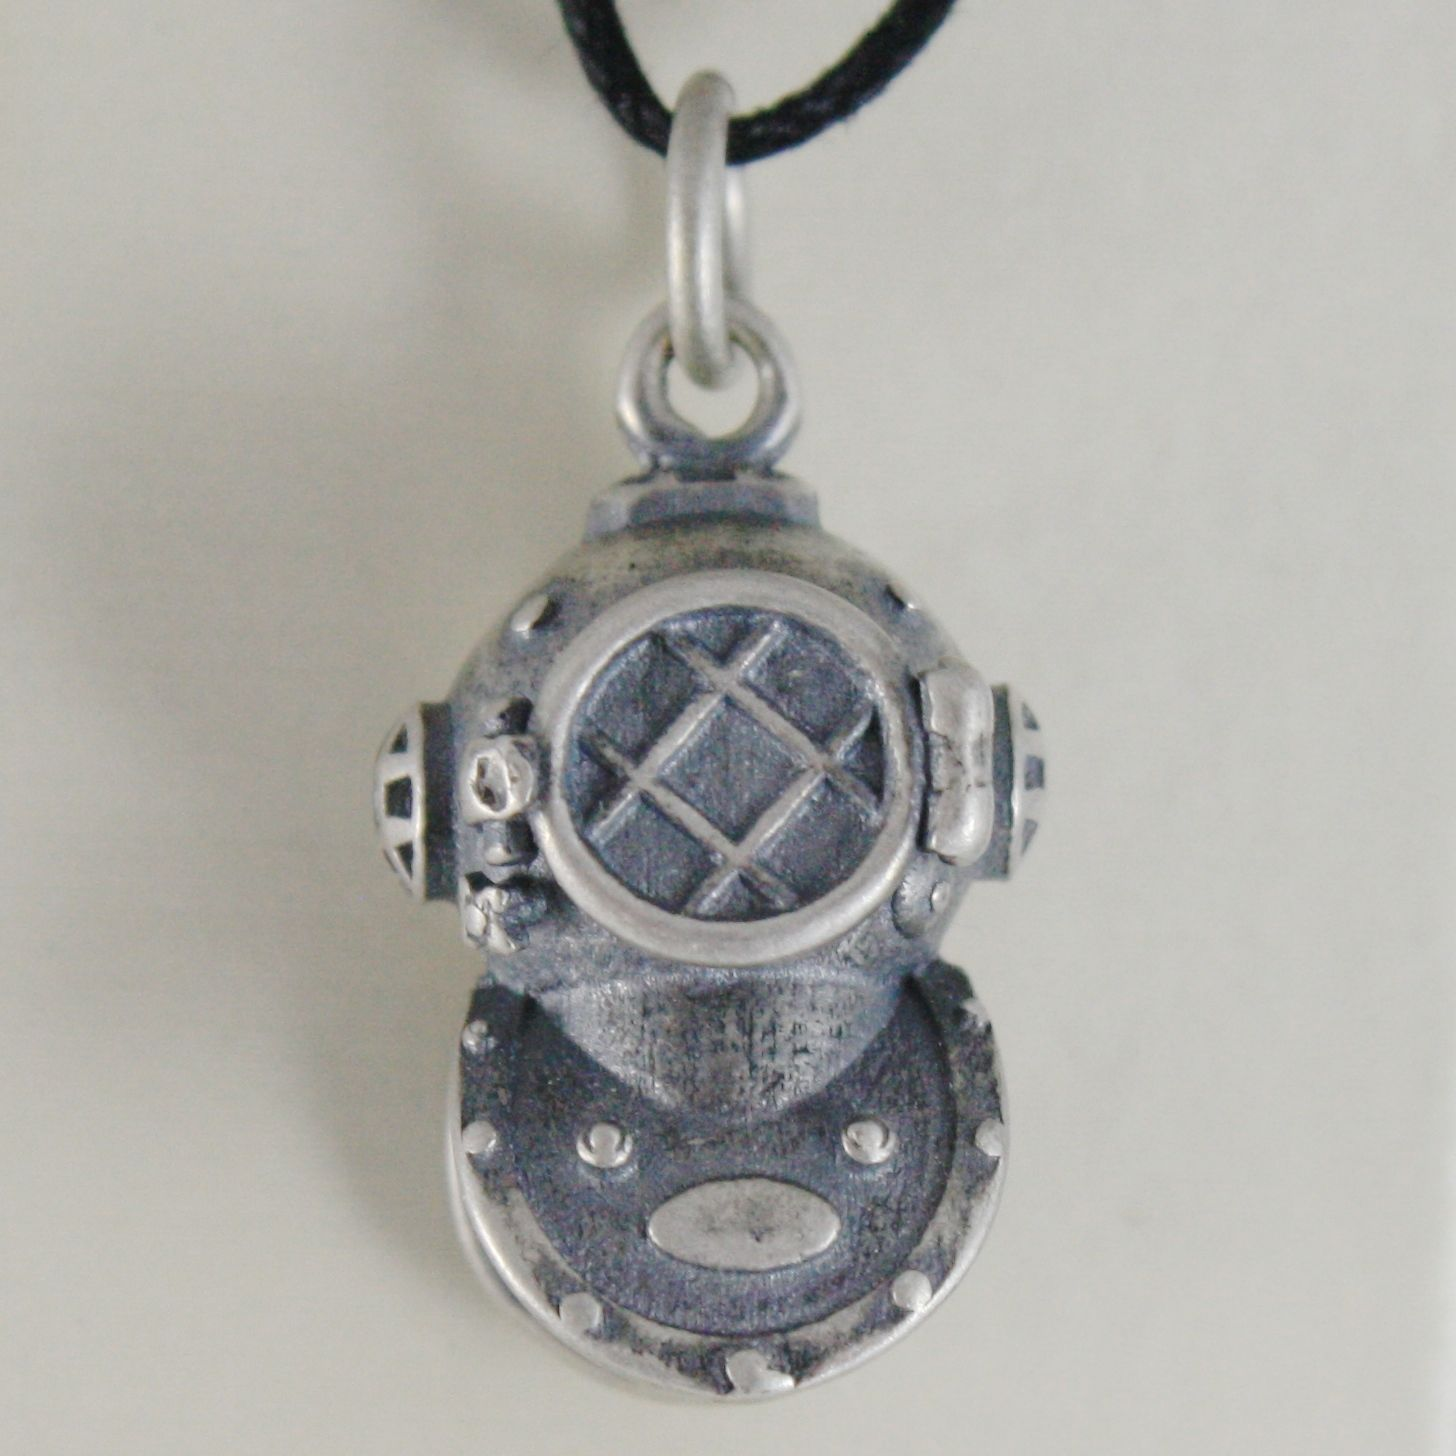 SOLID 925 STERLING SILVER DIVER PENDANT FINELY BURNISHED AND SATIN MADE IN ITALY